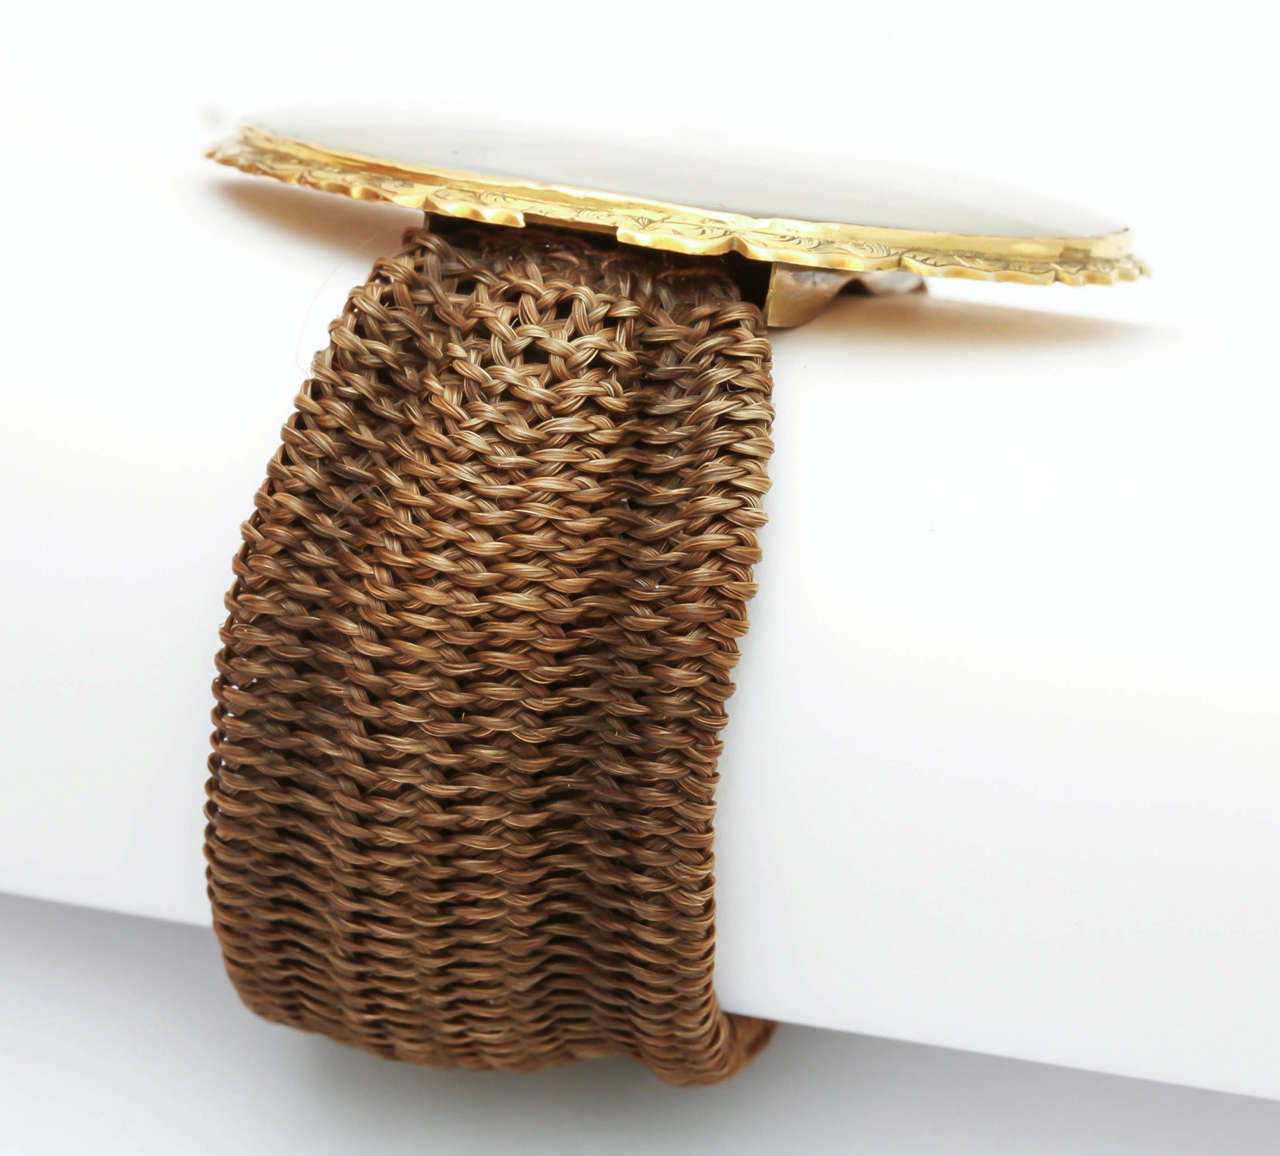 Miniature Portrait Yellow Gold Woven Band Bracelet 5